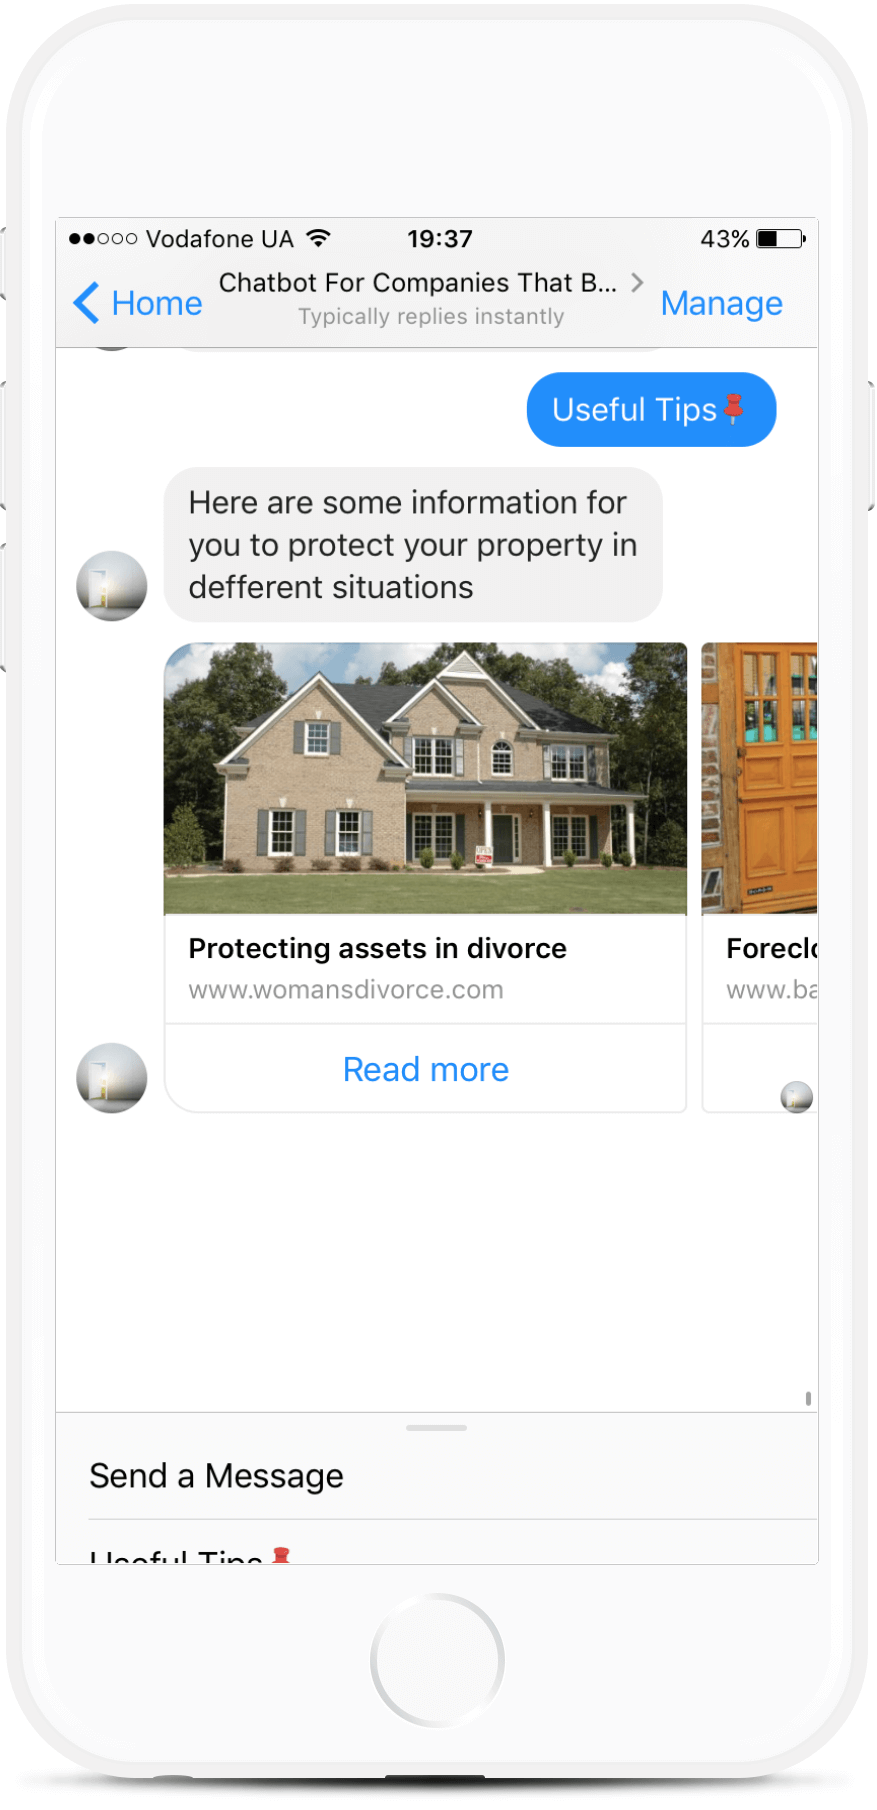 Lead Generation Chatbot For Companies That Buy Houses for $59   #messenger #bottemplates #bots #chatbots #aibots #fbmessenger #botmakers